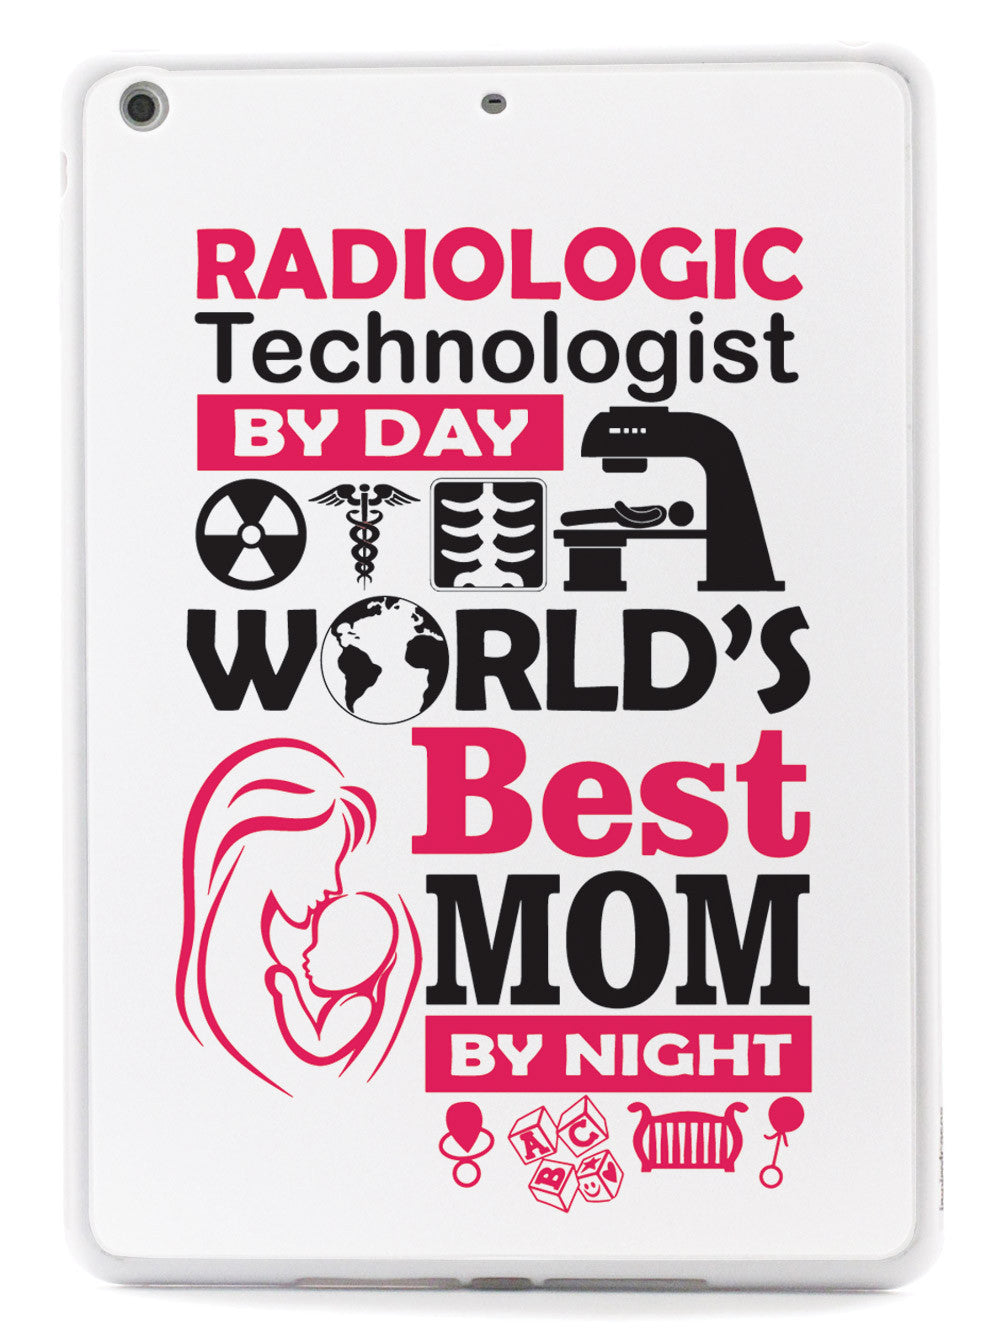 Radiologic Technologist By Day Mom By Night - White Case